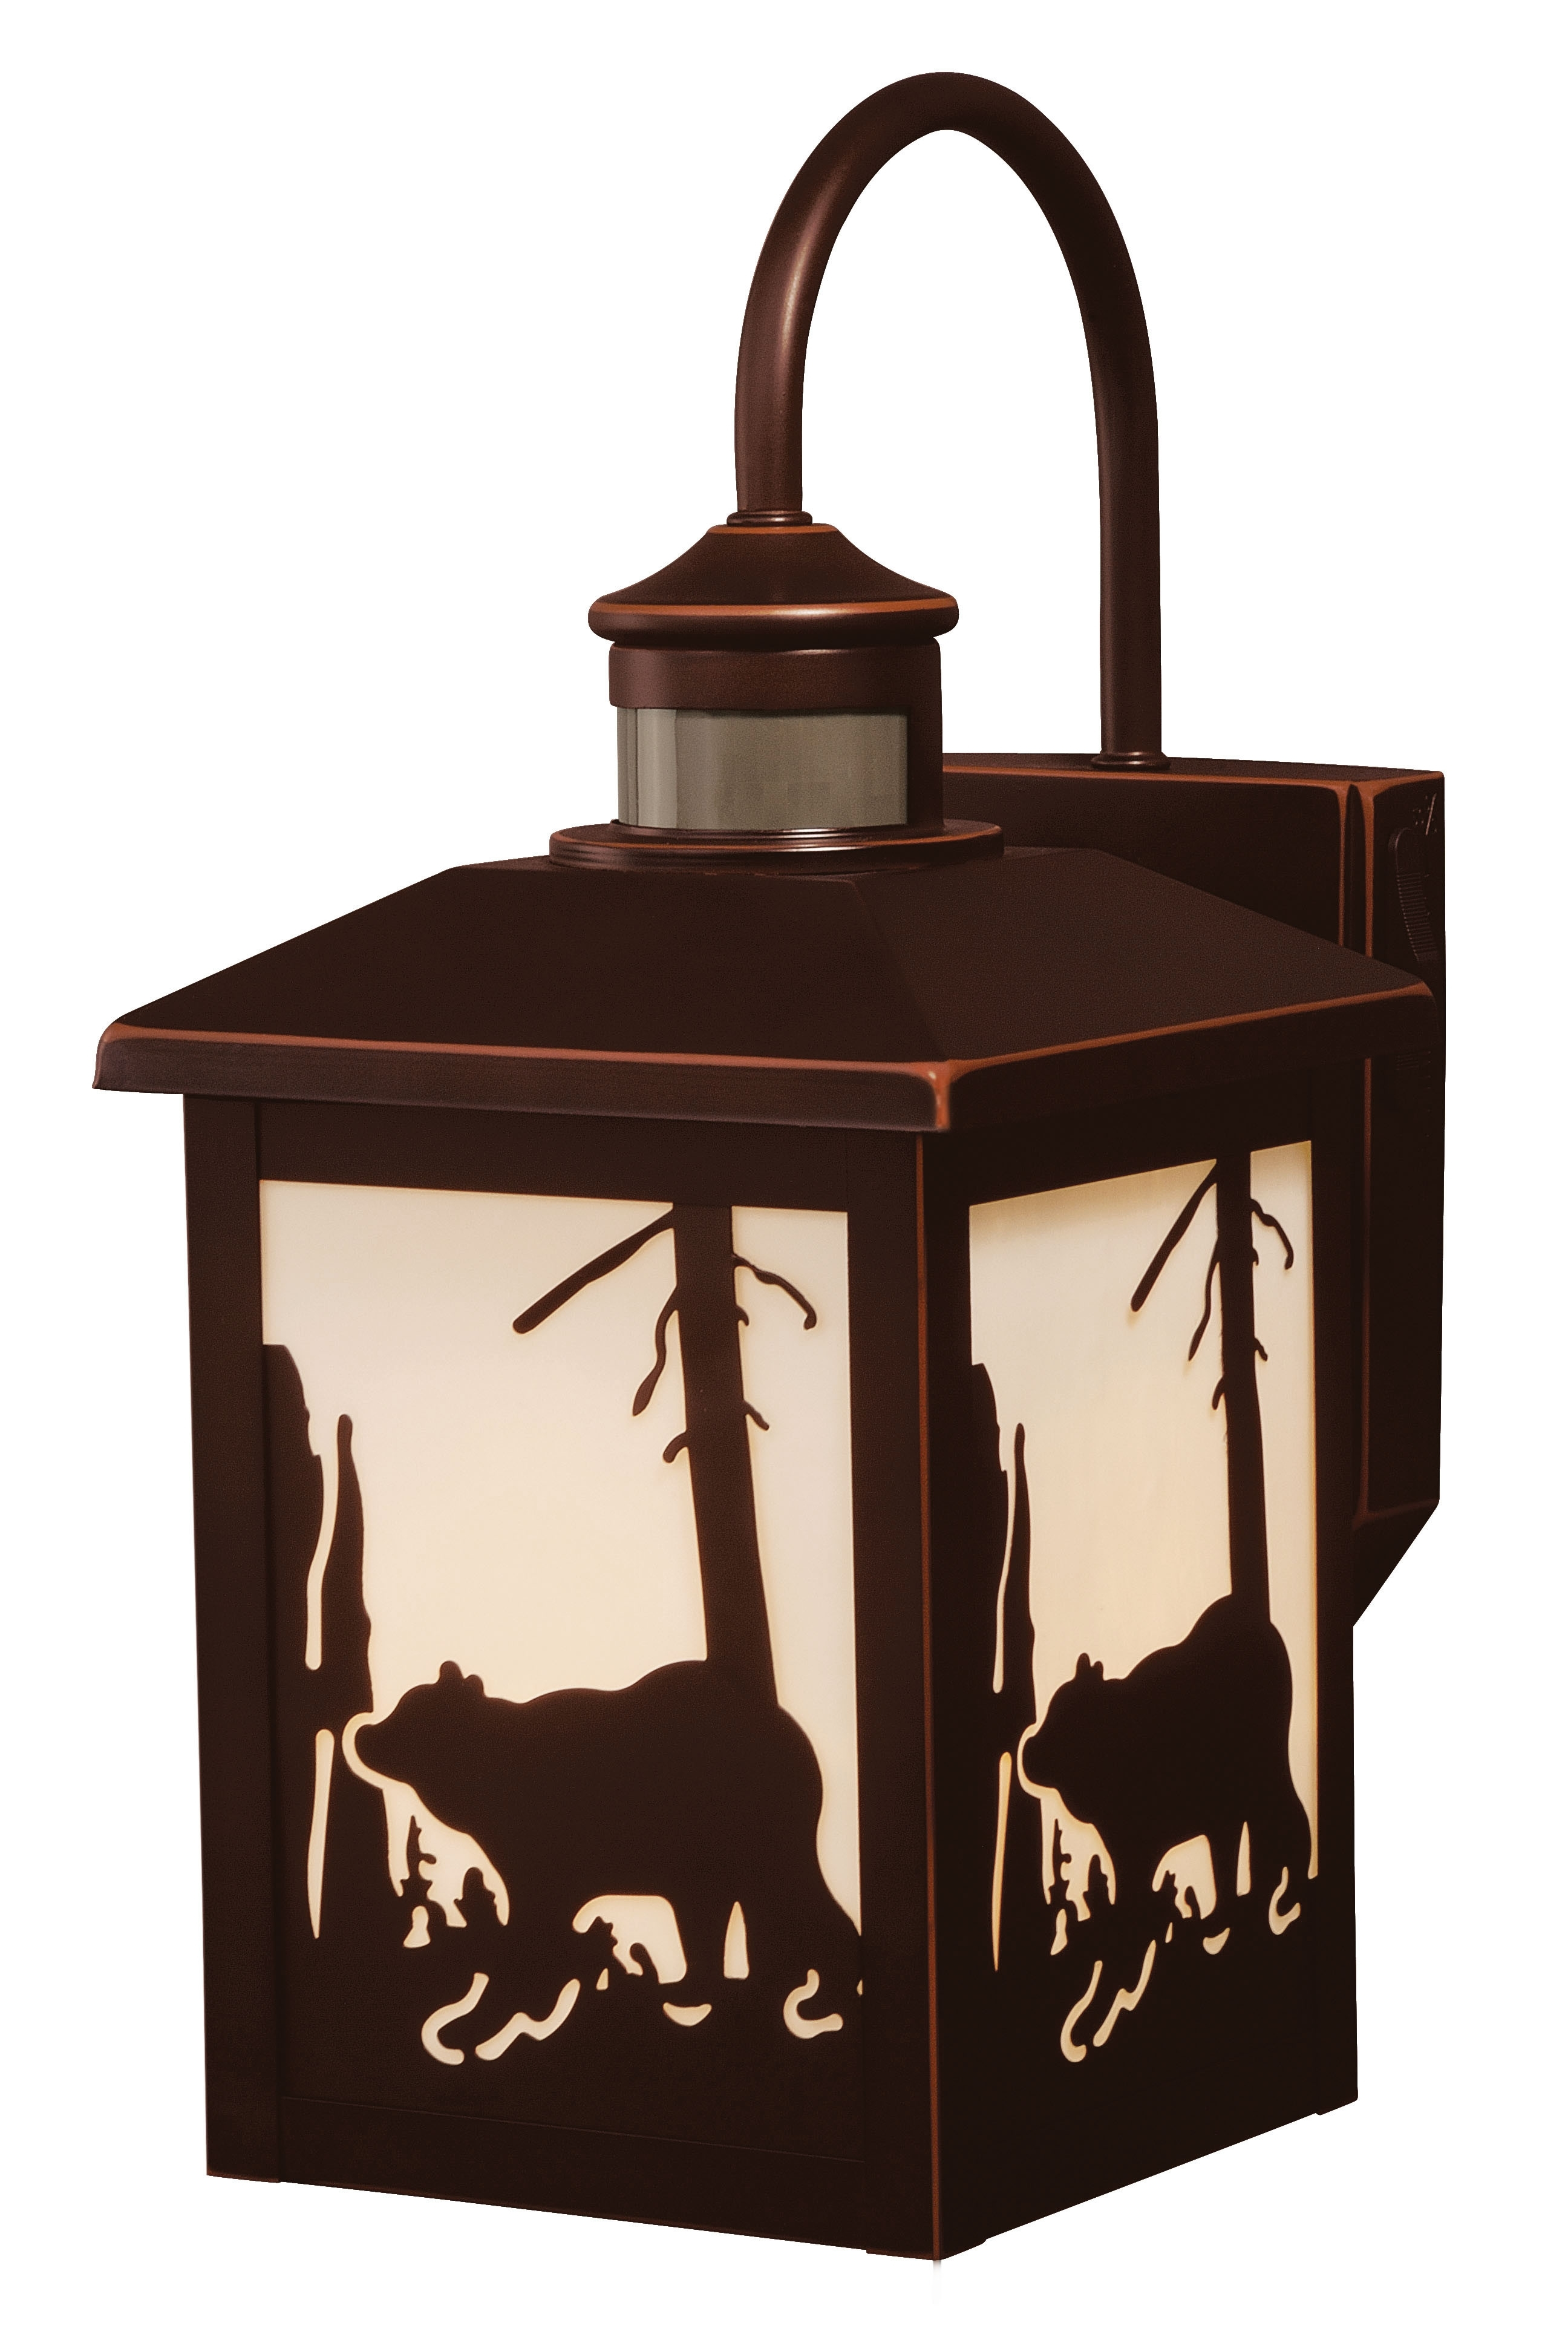 Outdoor Lighting Industrial Style Luxury Post Lights Kitchen Light intended for Outdoor Lanterns Decors (Image 14 of 20)